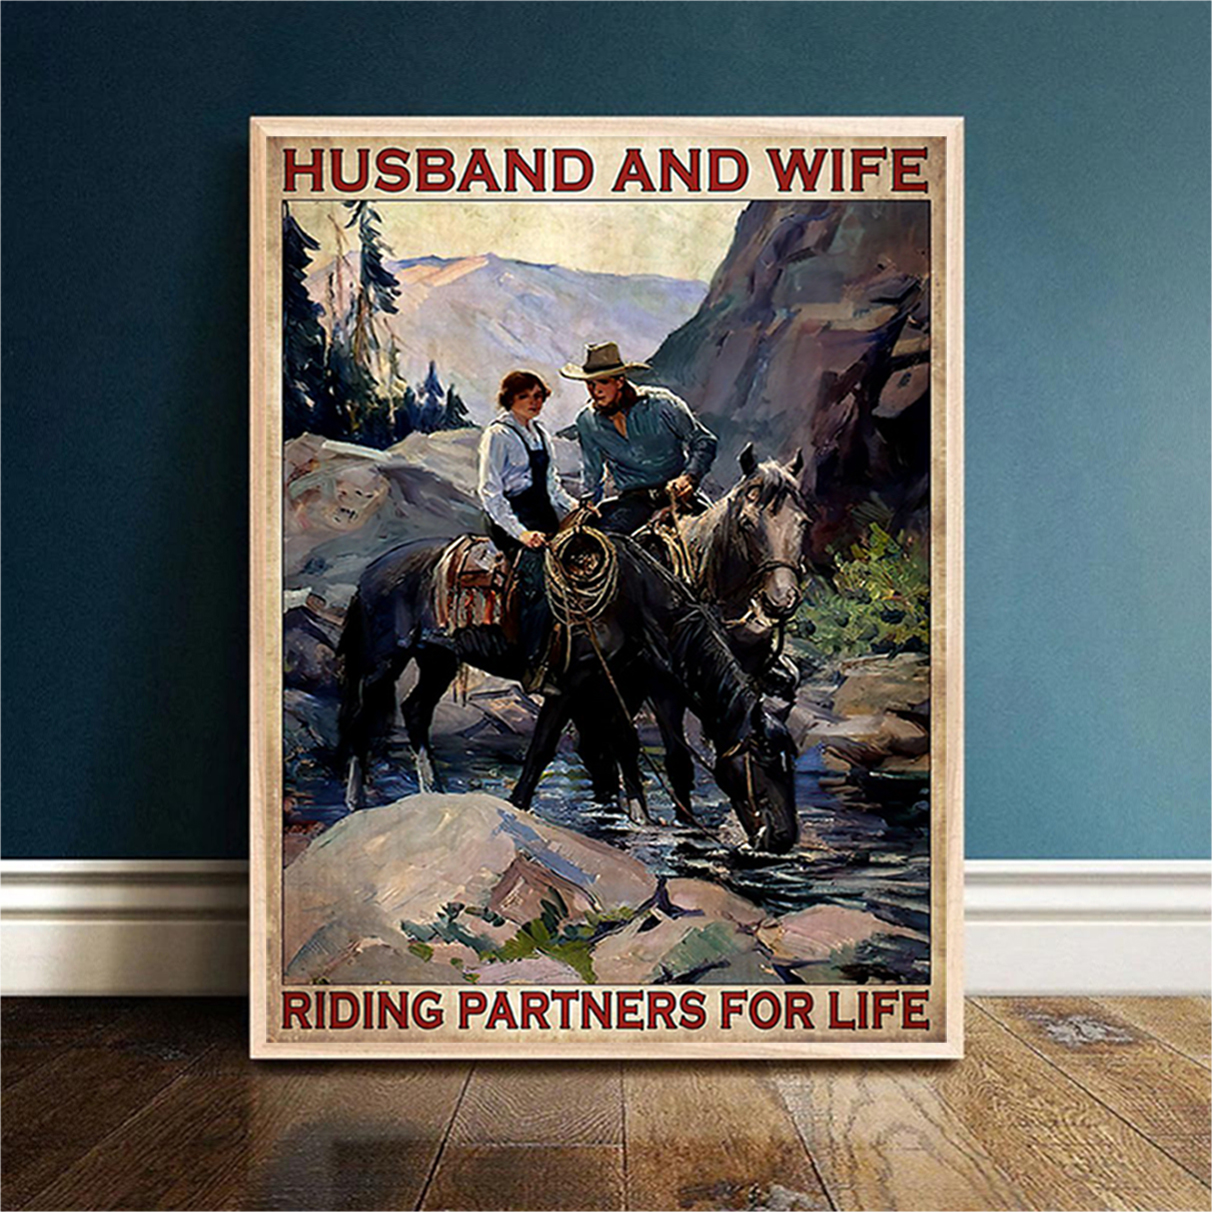 Husband and wife riding partners for life poster A2